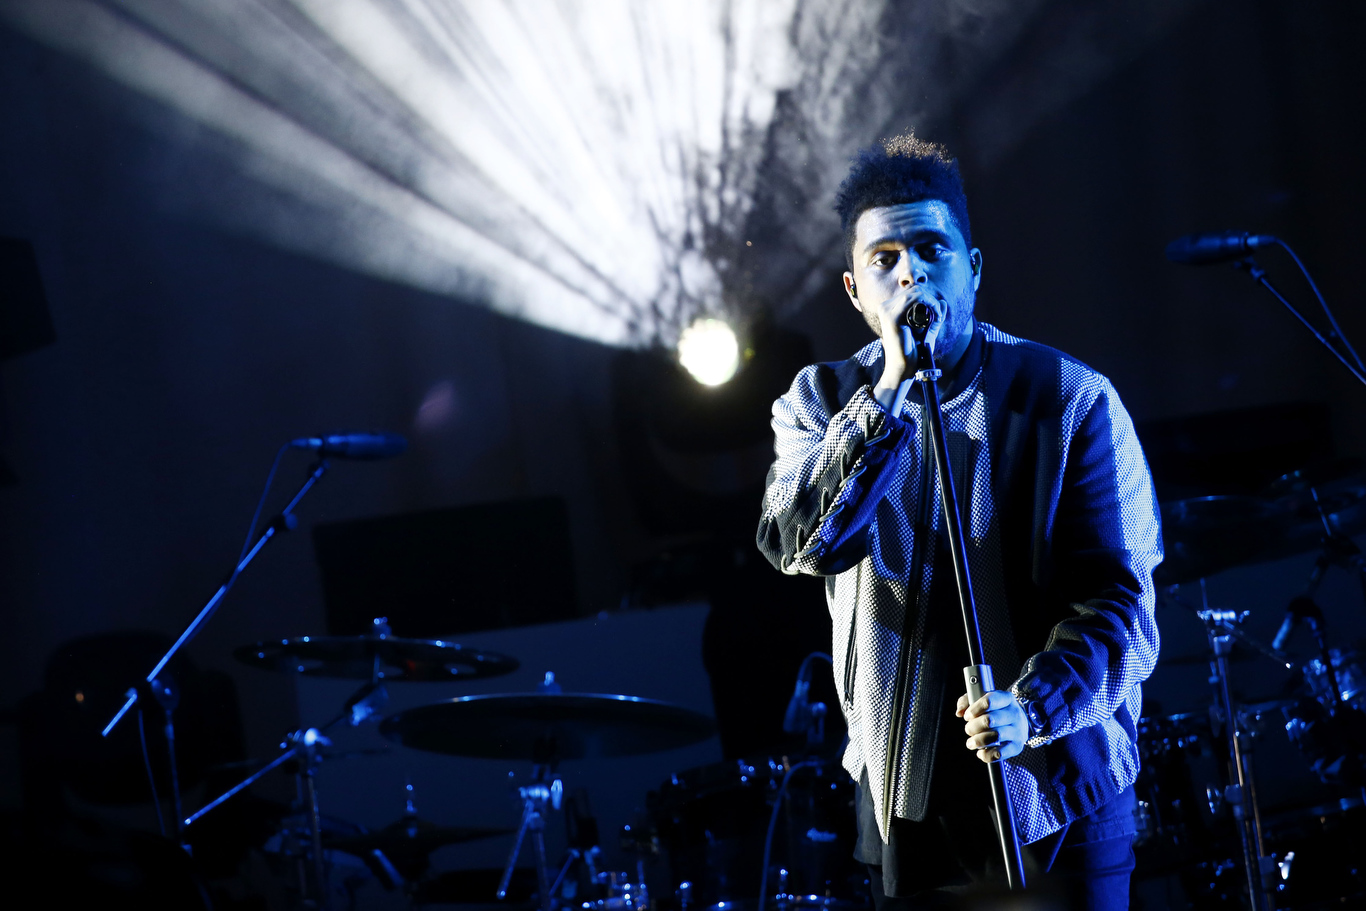 The Weeknd performing live after the show